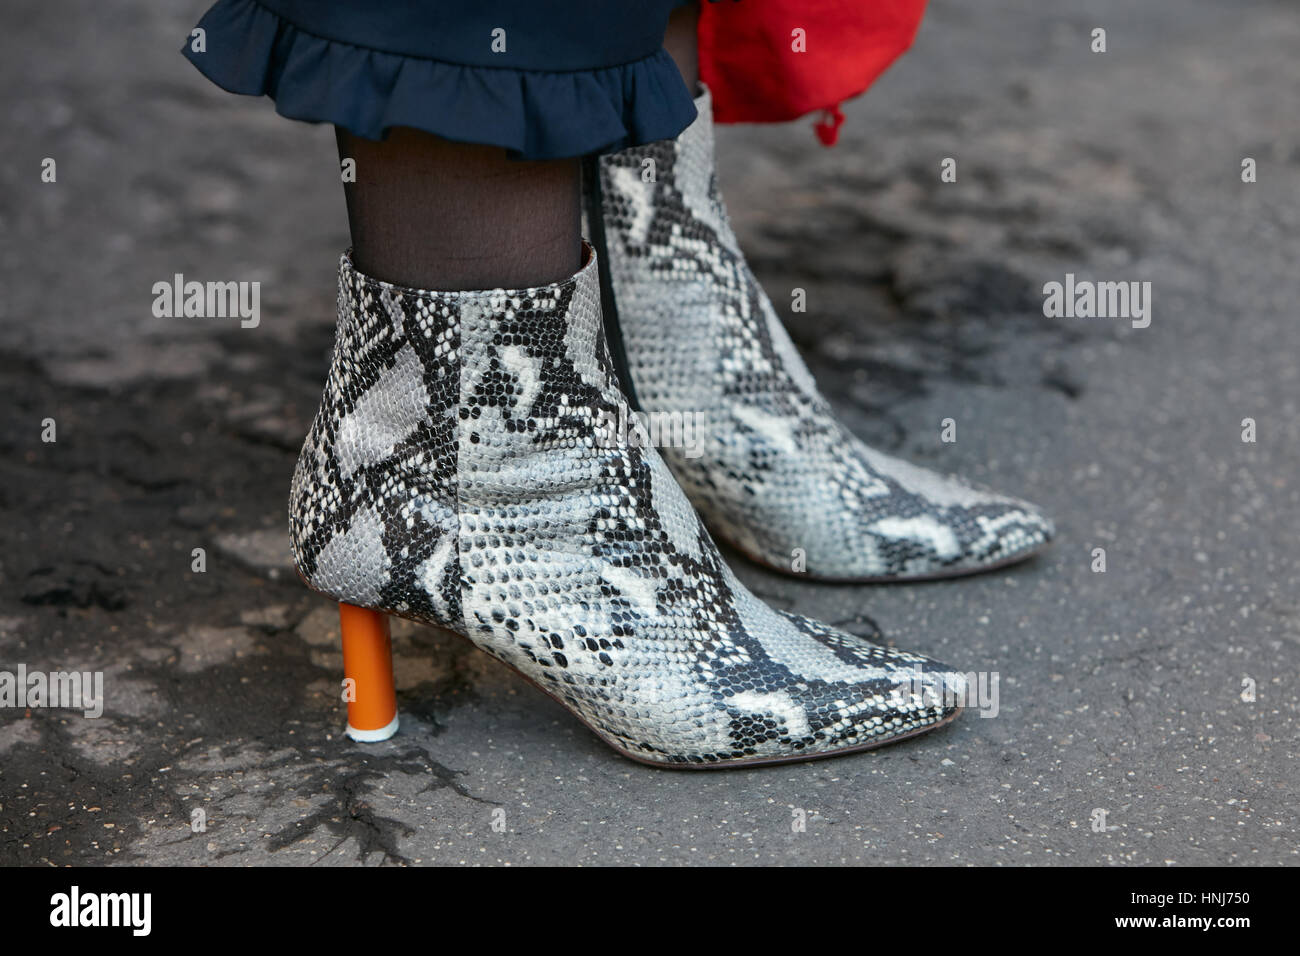 Woman with black and white snake boots with orange heel, before Salvatore Ferragamo fashion show, Milan Fashion - Stock Image